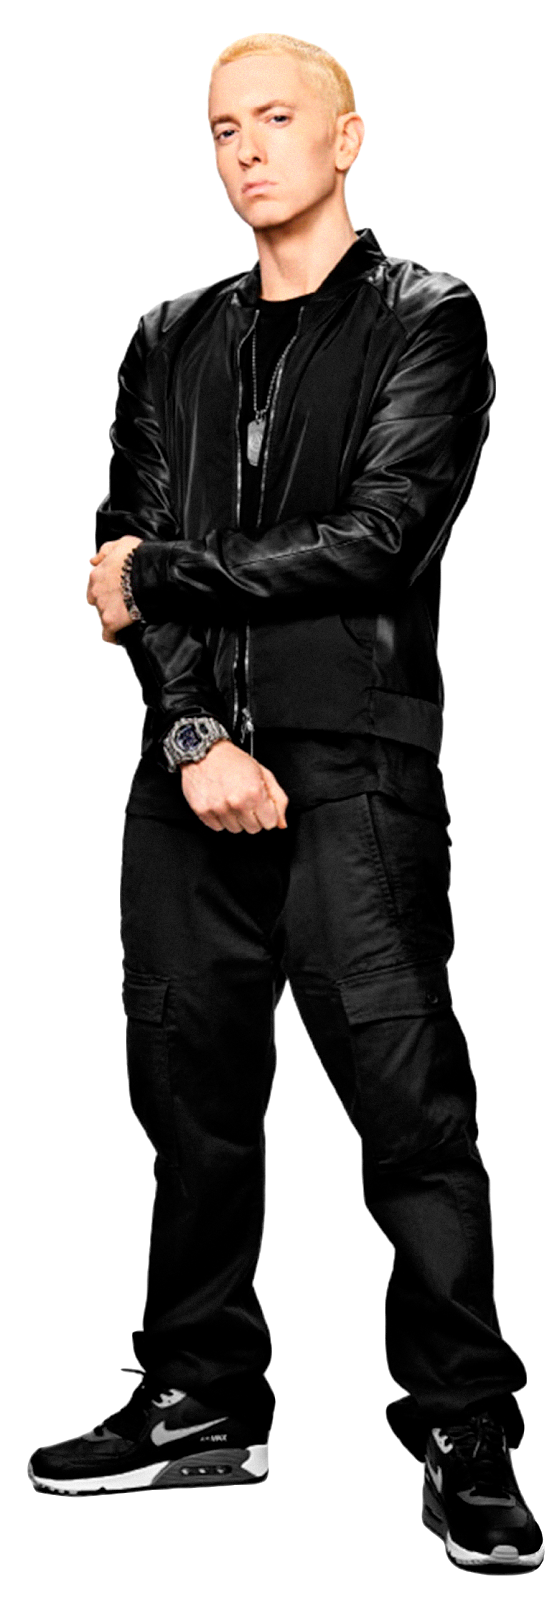 Eminem png. Images transparent free download